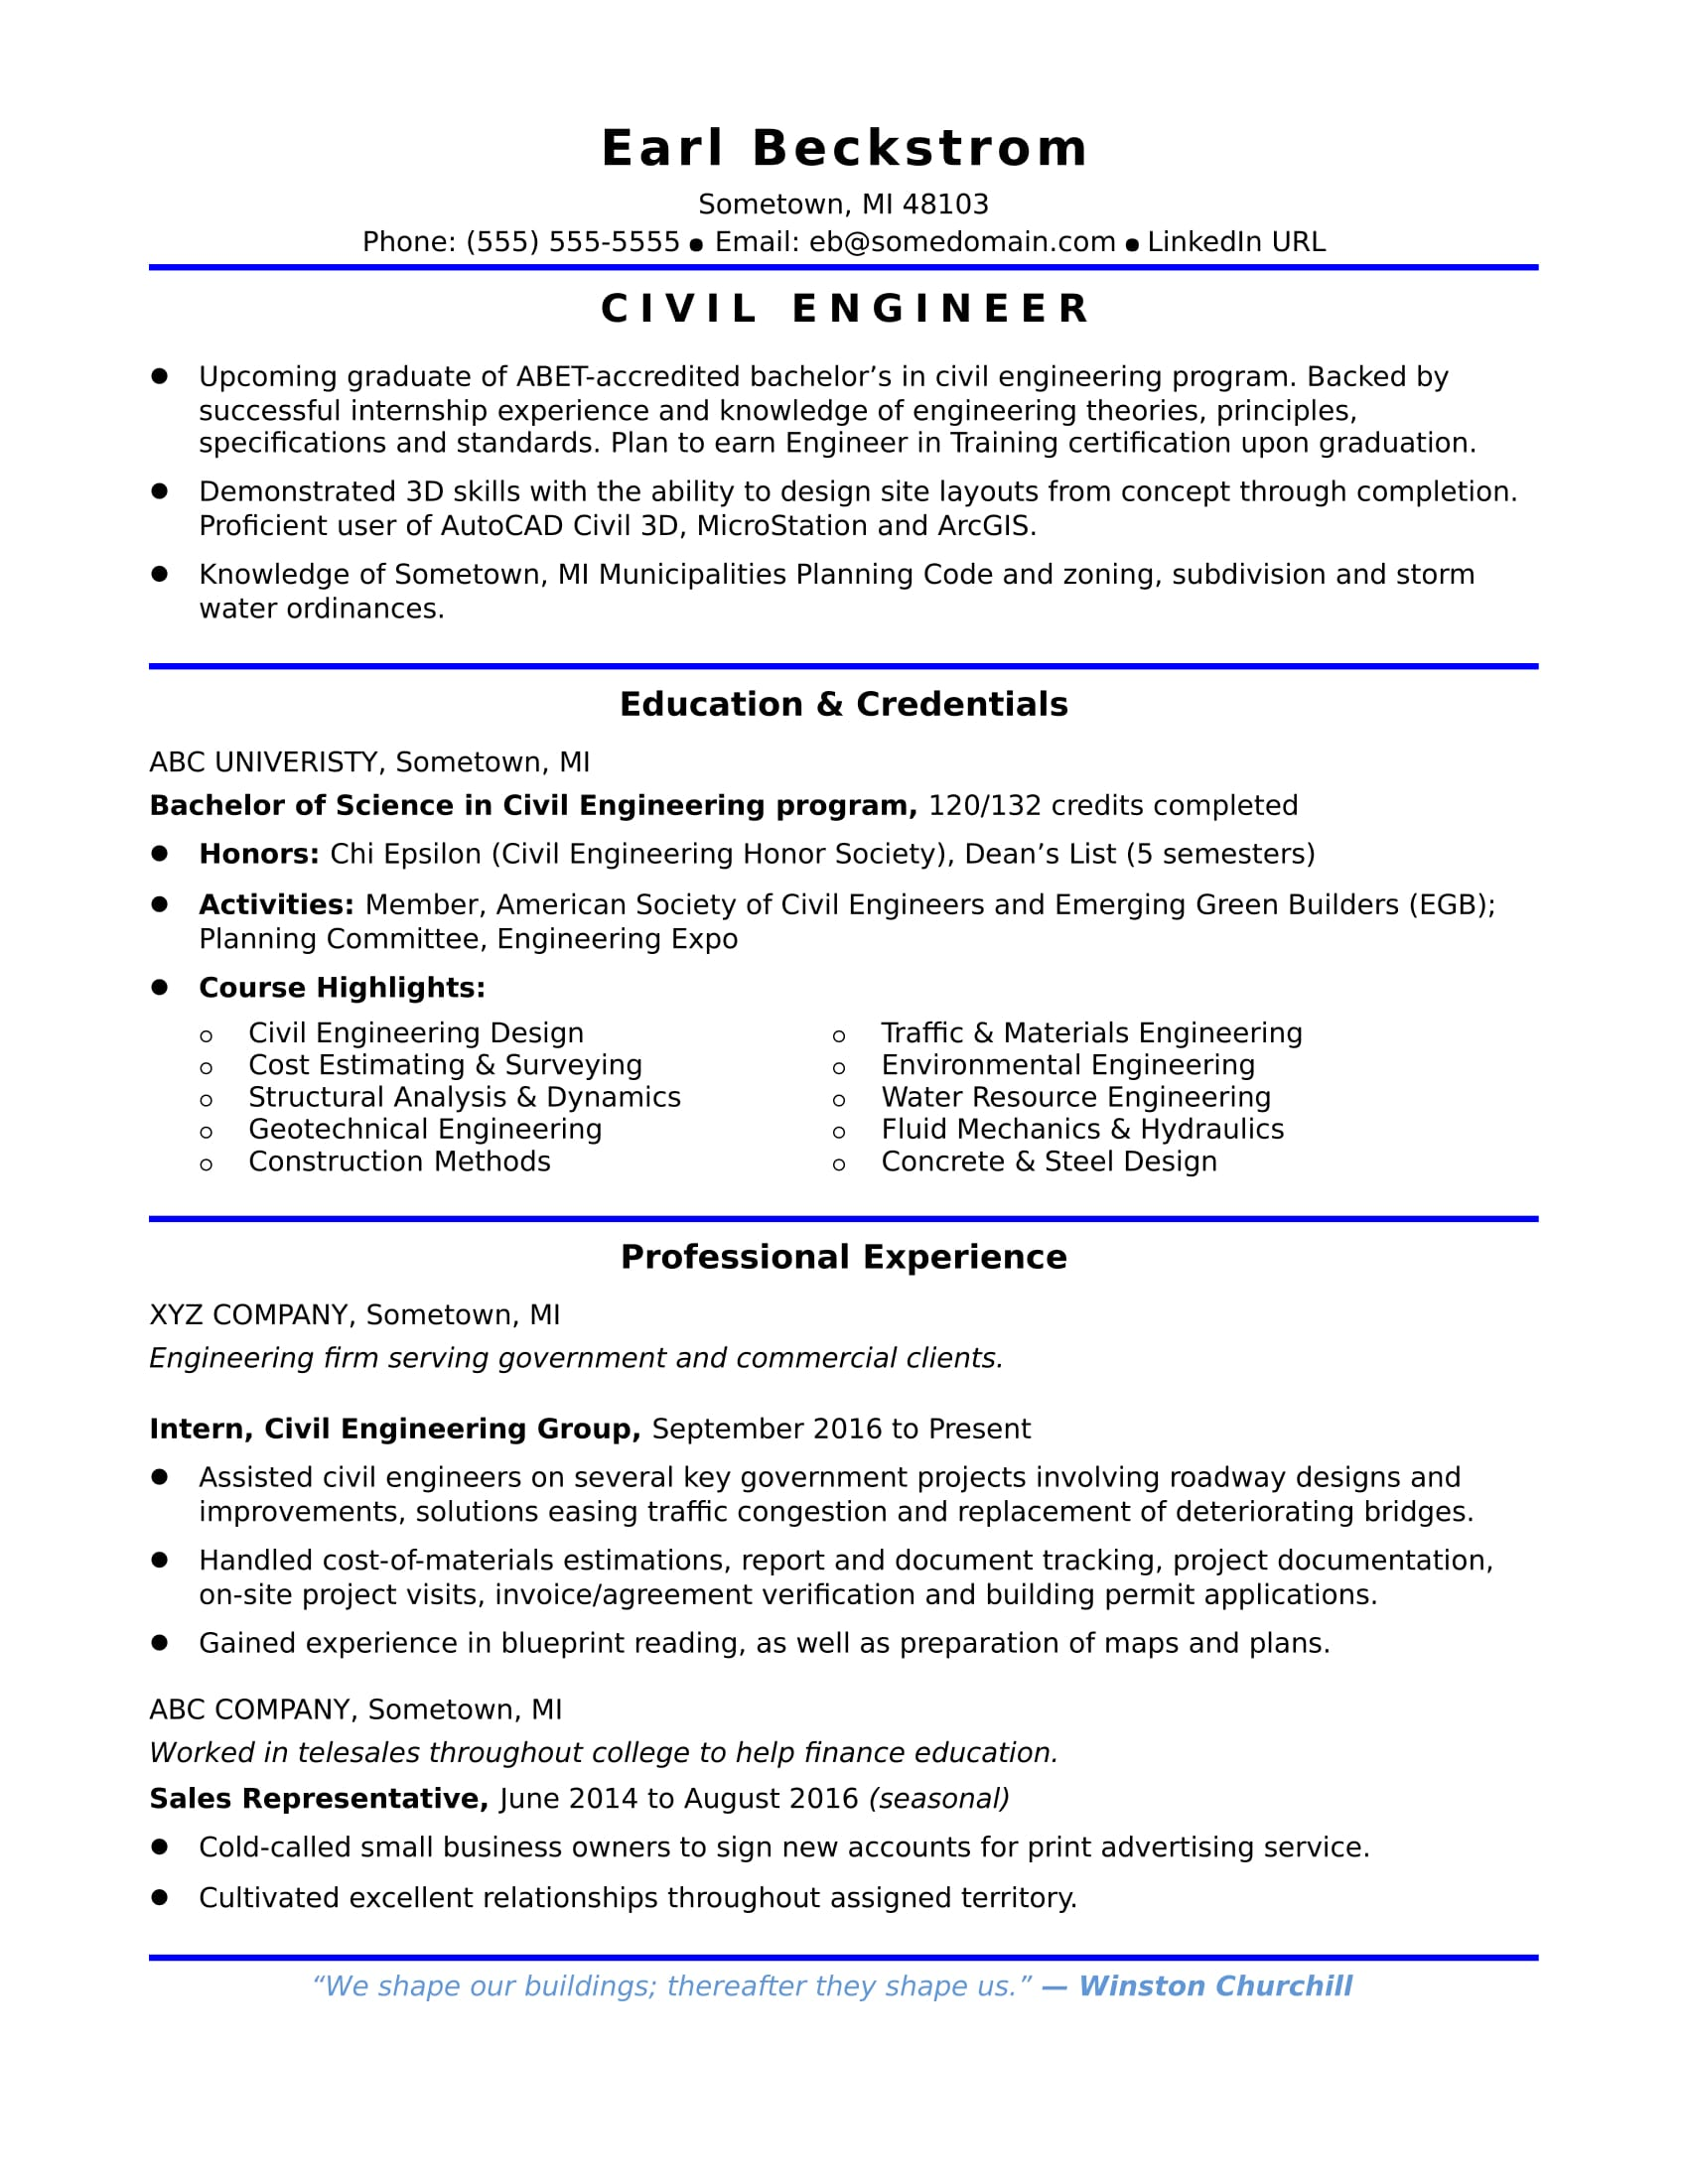 Sample resume for an entry level civil engineer monster sample resume for an entry level civil engineer yadclub Images